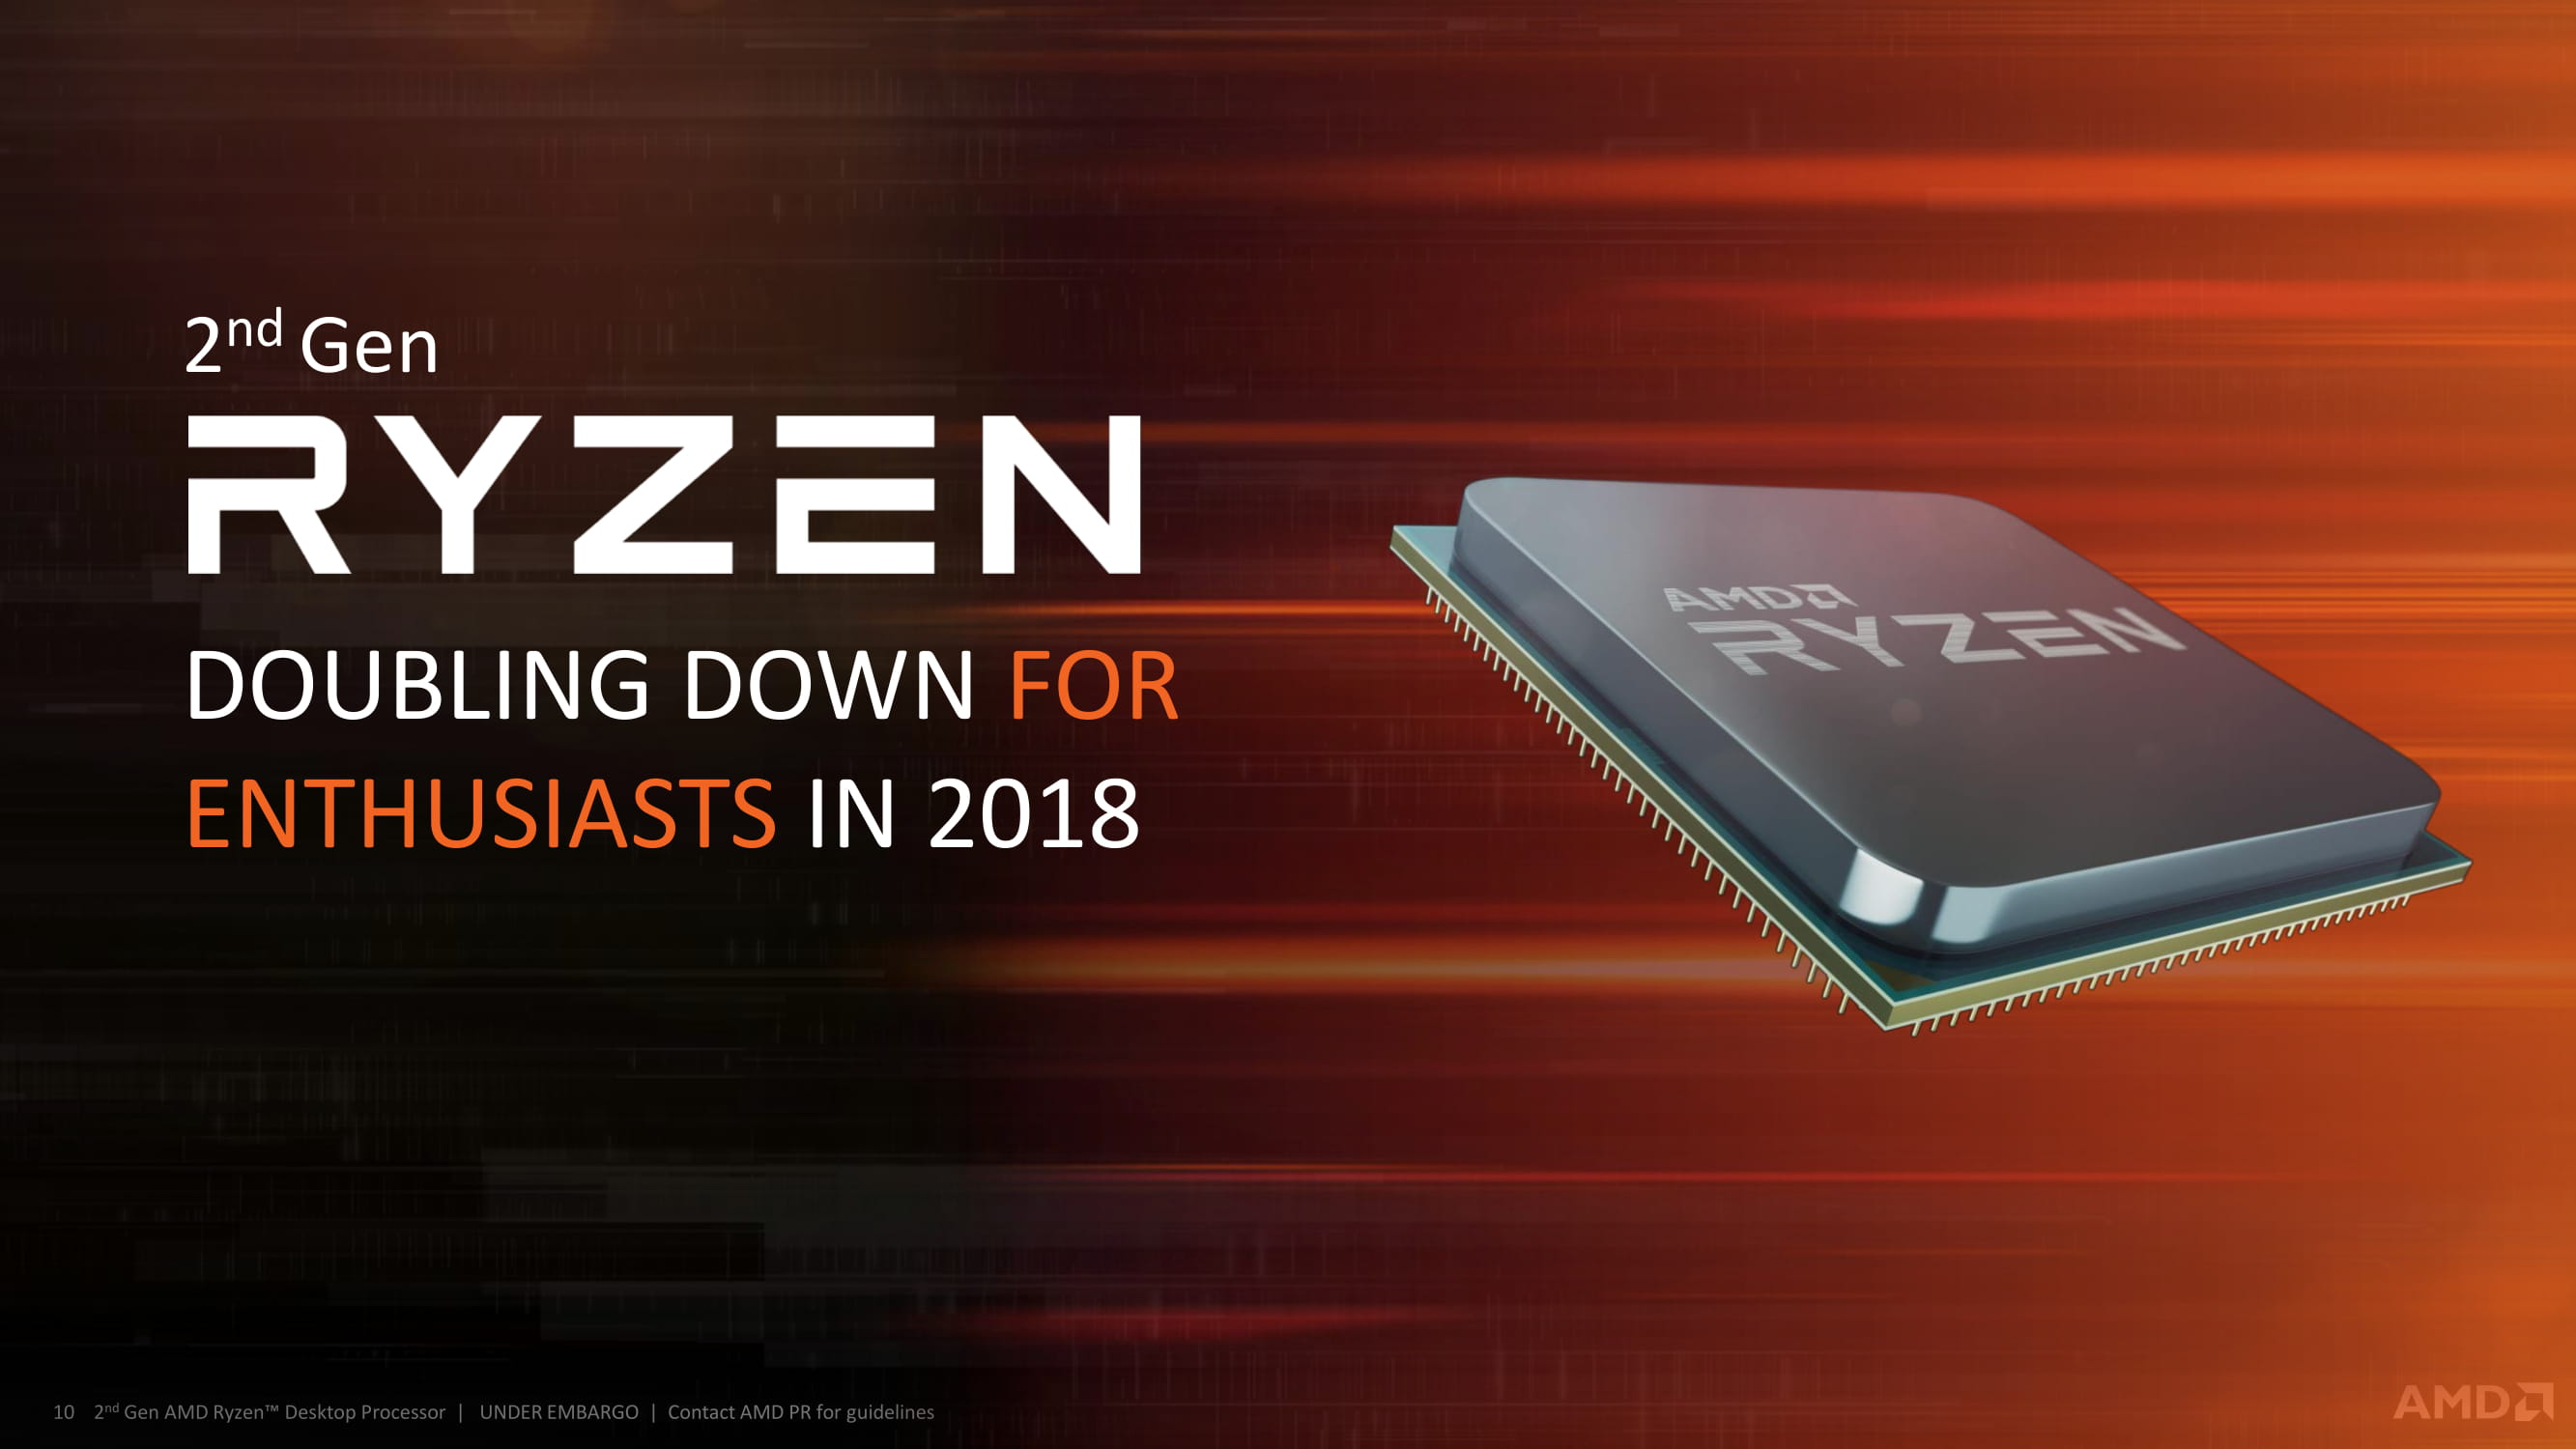 2nd Gen AMD Ryzen Desktop Processor-2-10.jpg